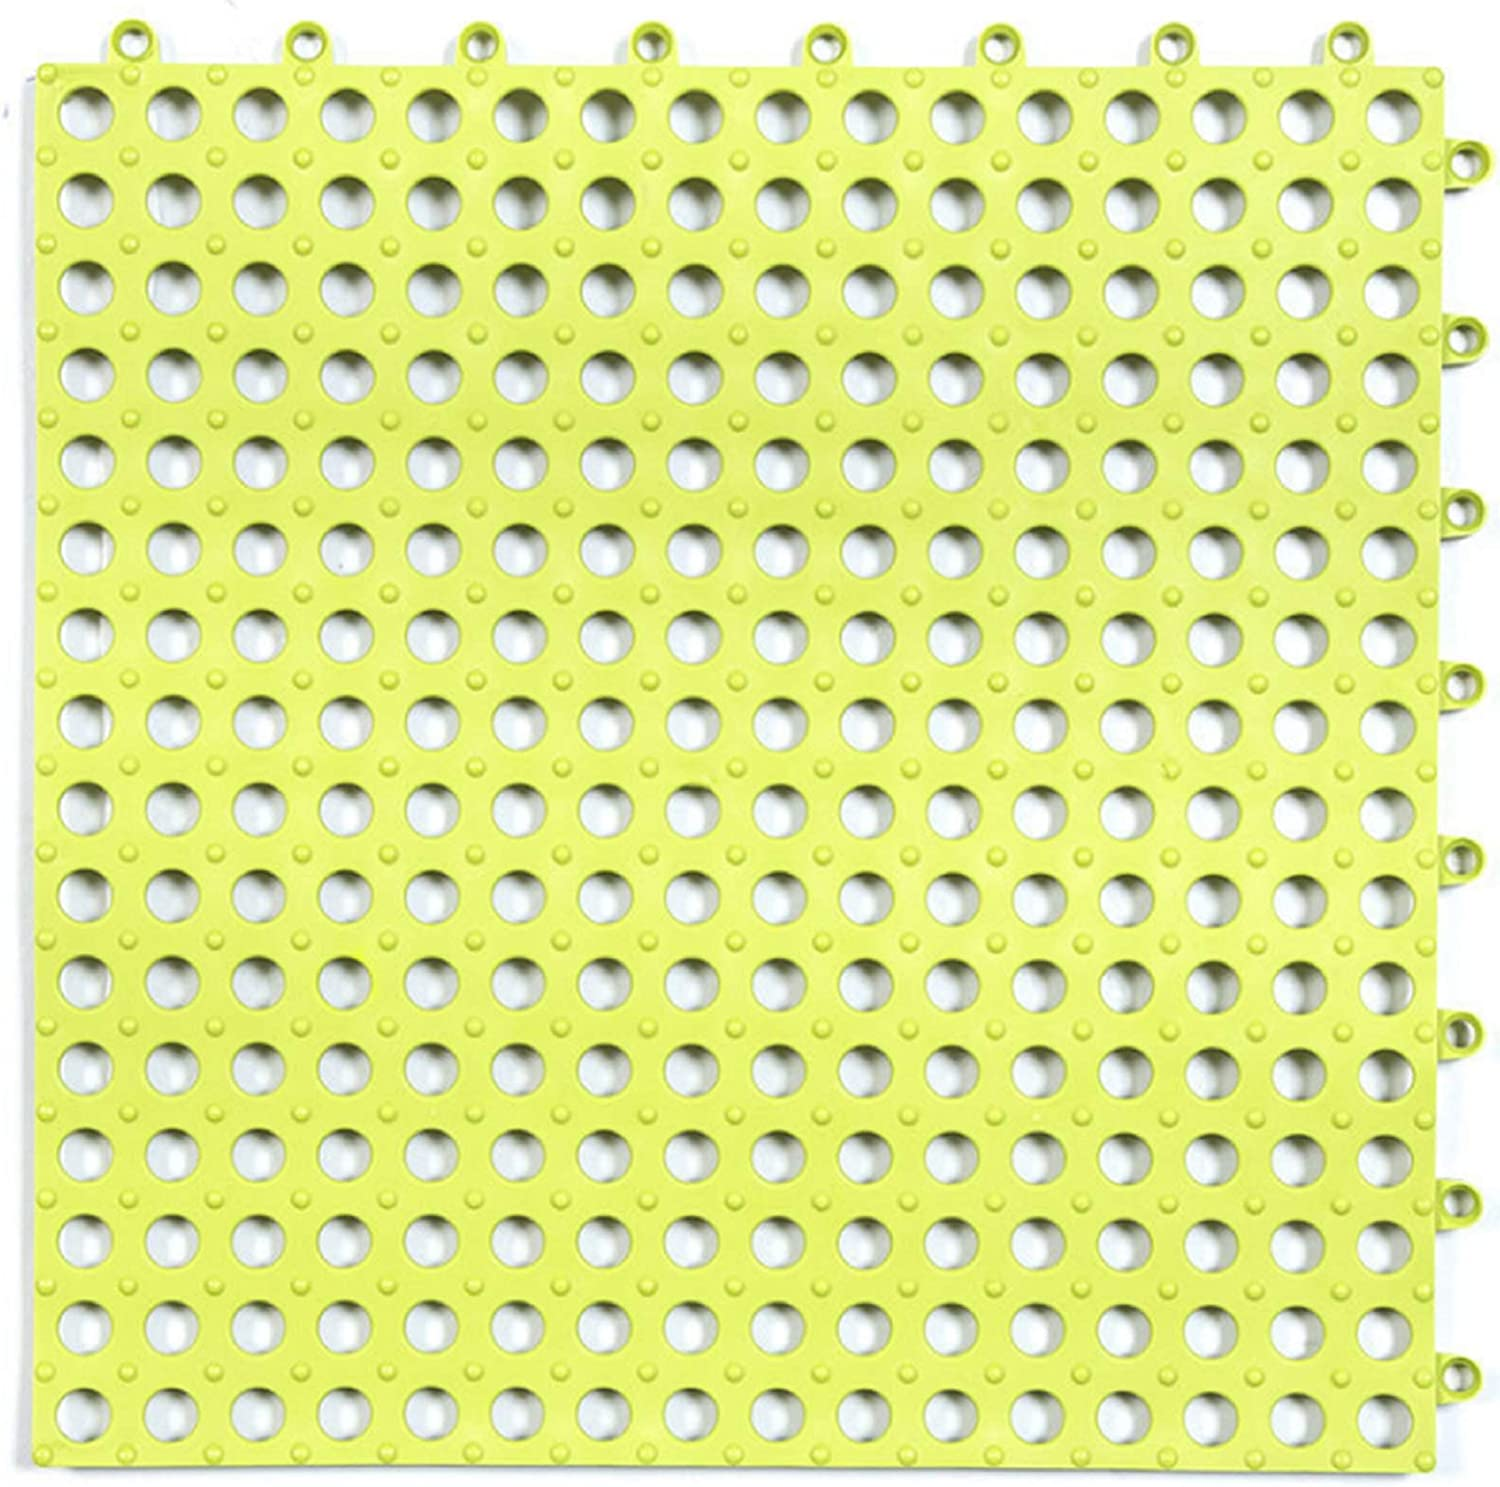 Gray for Wet Areas Like Pool Pet Area Shower Locker-Room Bathroom Deck Patio FLYYQMIAO Set of 10 Interlocking Rubber Floor Tiles with Drain Holes DIY Size PVC Drainage Floor Tiles Mat